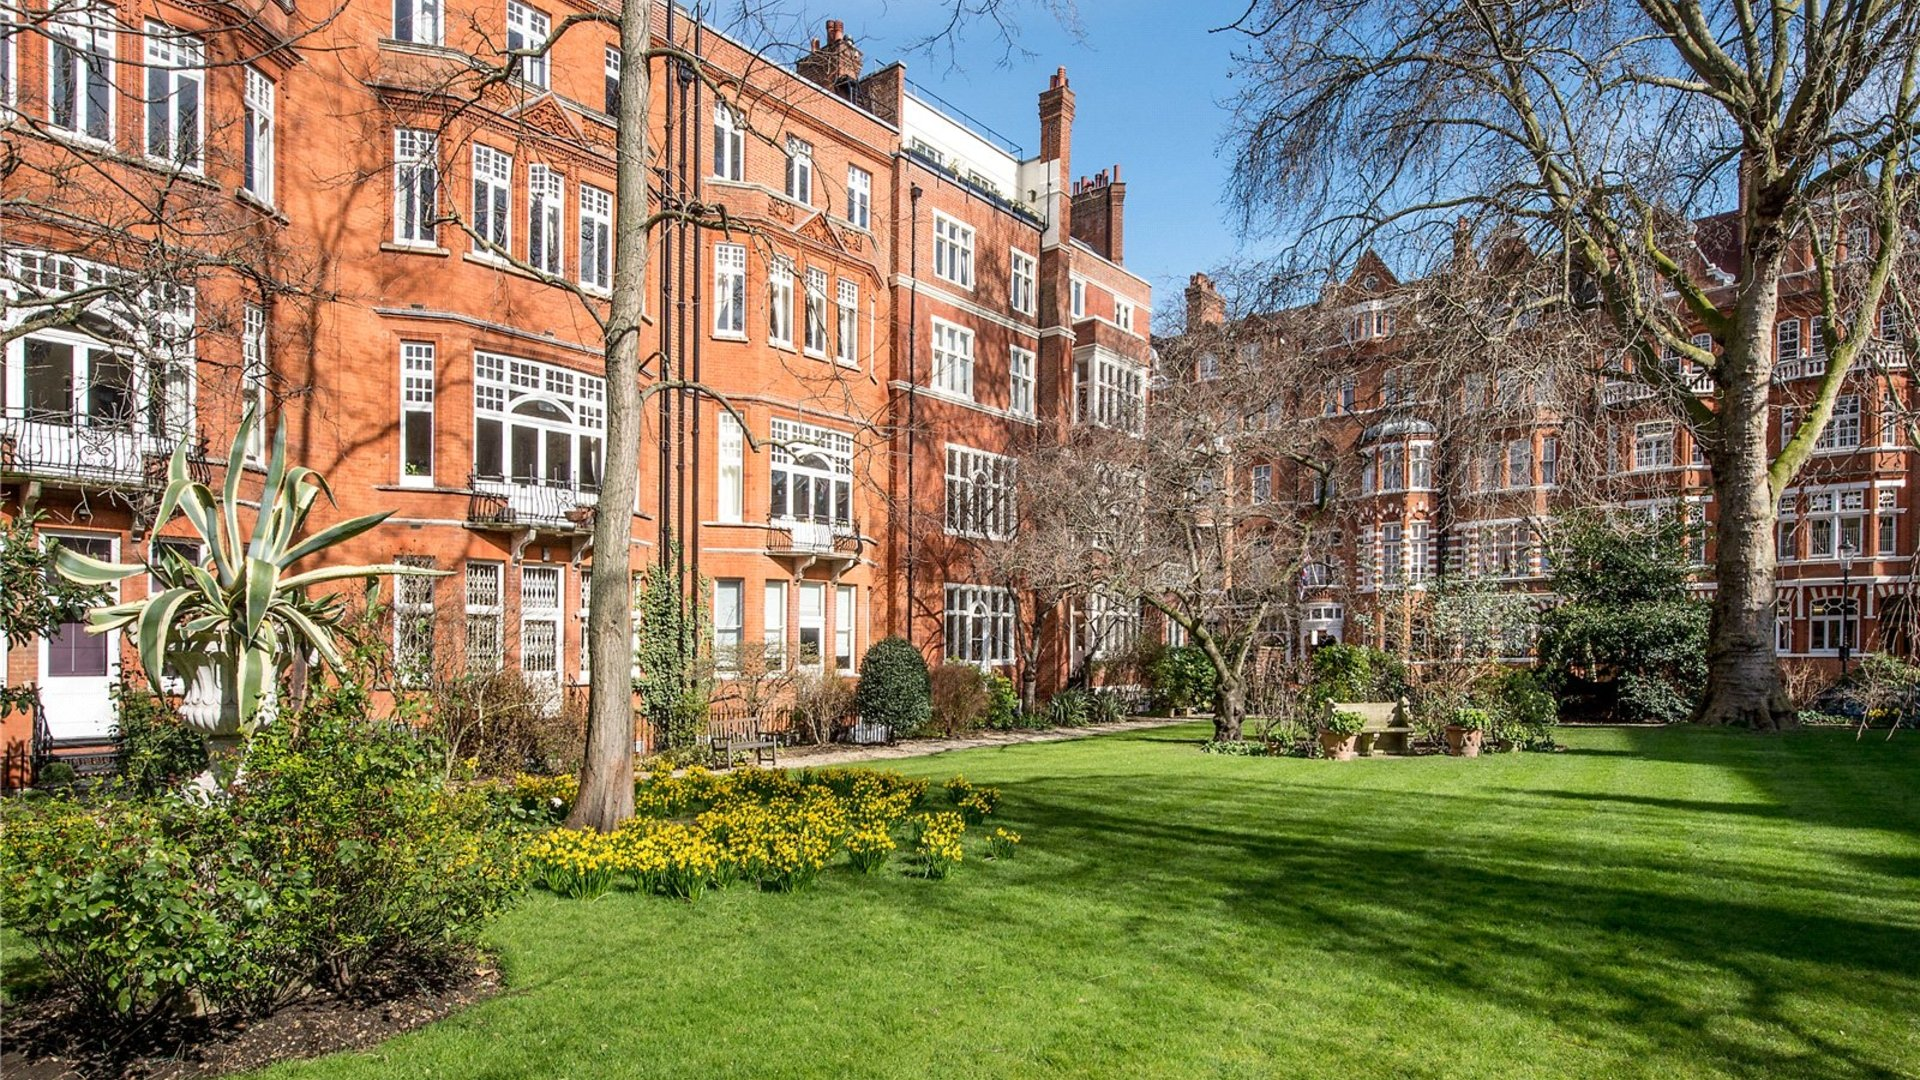 Cadogan Gardens, Chelsea, London